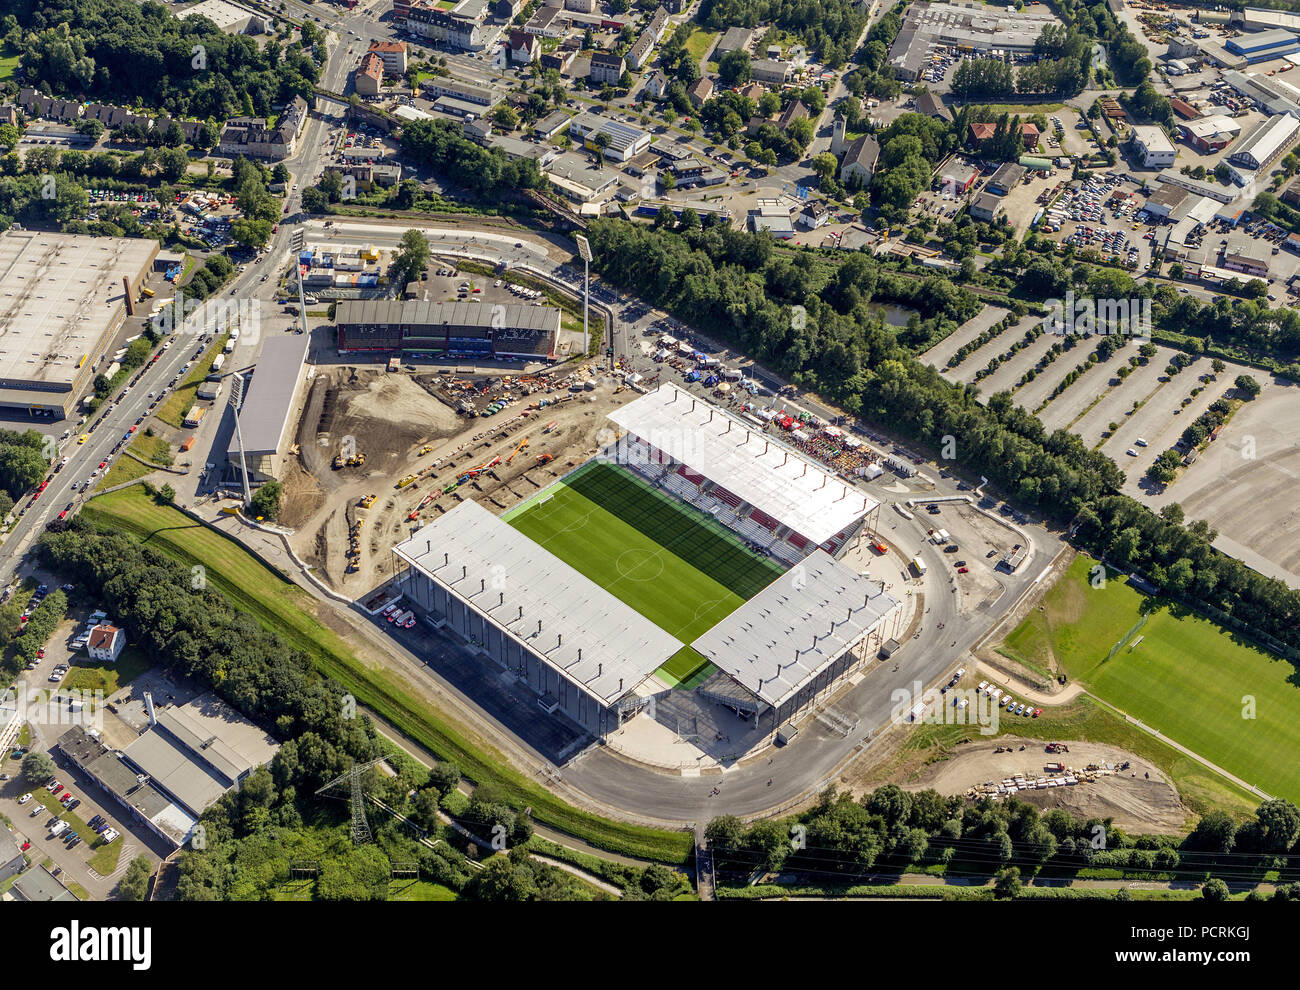 Aerial photo, after the opening of Essen Stadium, Rot-Weiss Essen, stadium at Hafenstrasse, Essen, Ruhr area, North Rhine-Westphalia, Germany, Europe - Stock Image